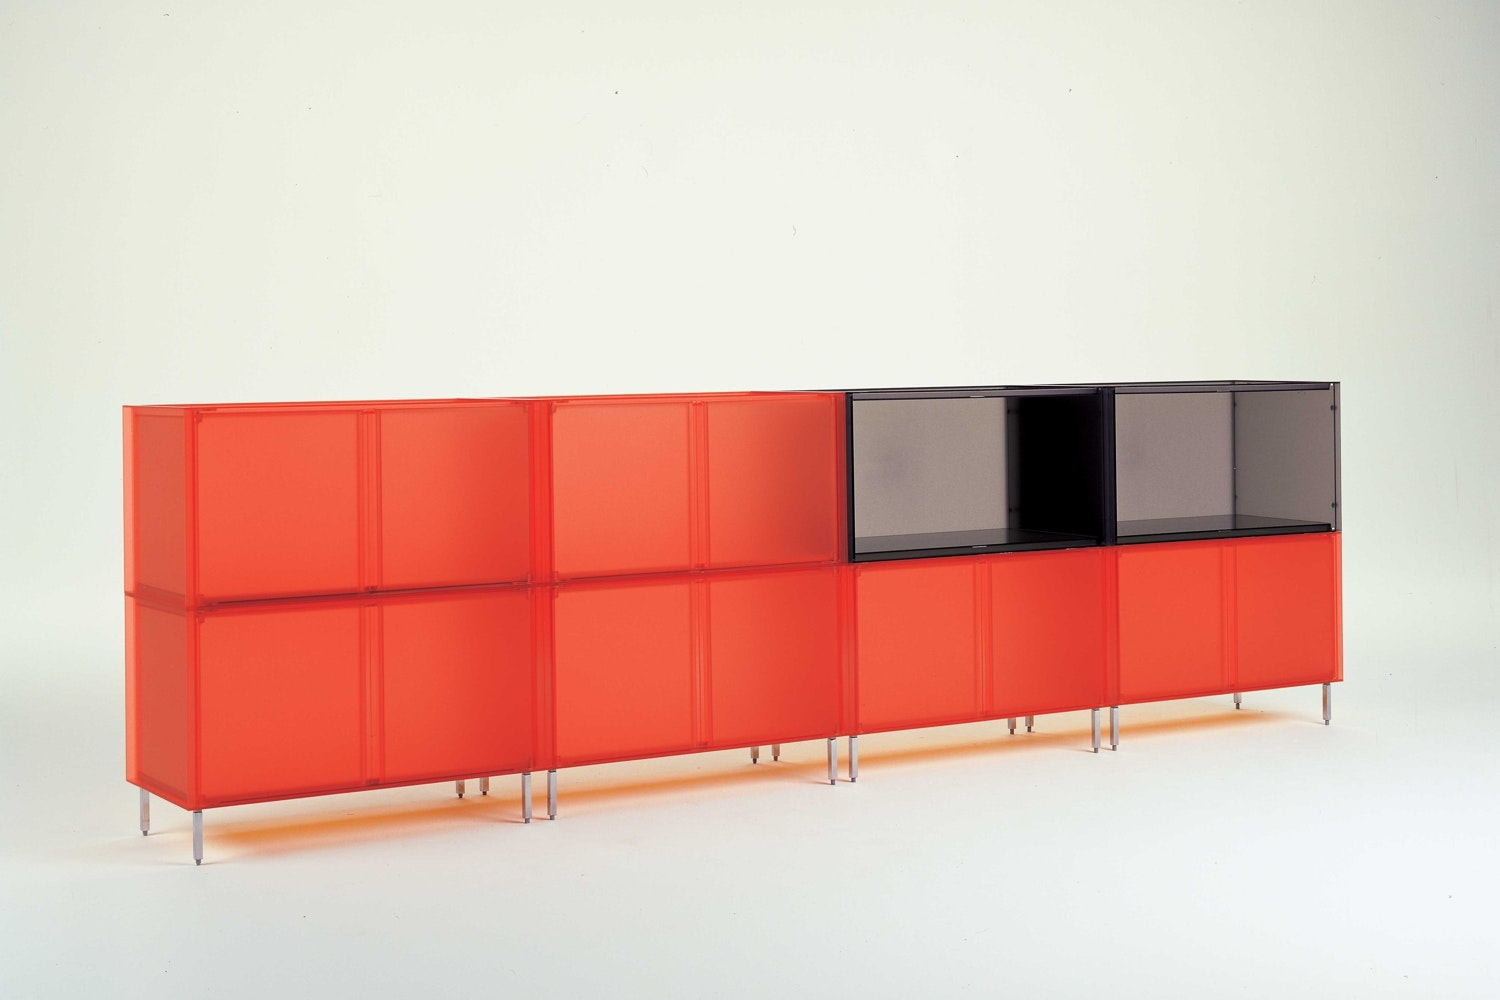 One Container by Piero Lissoni for Kartell